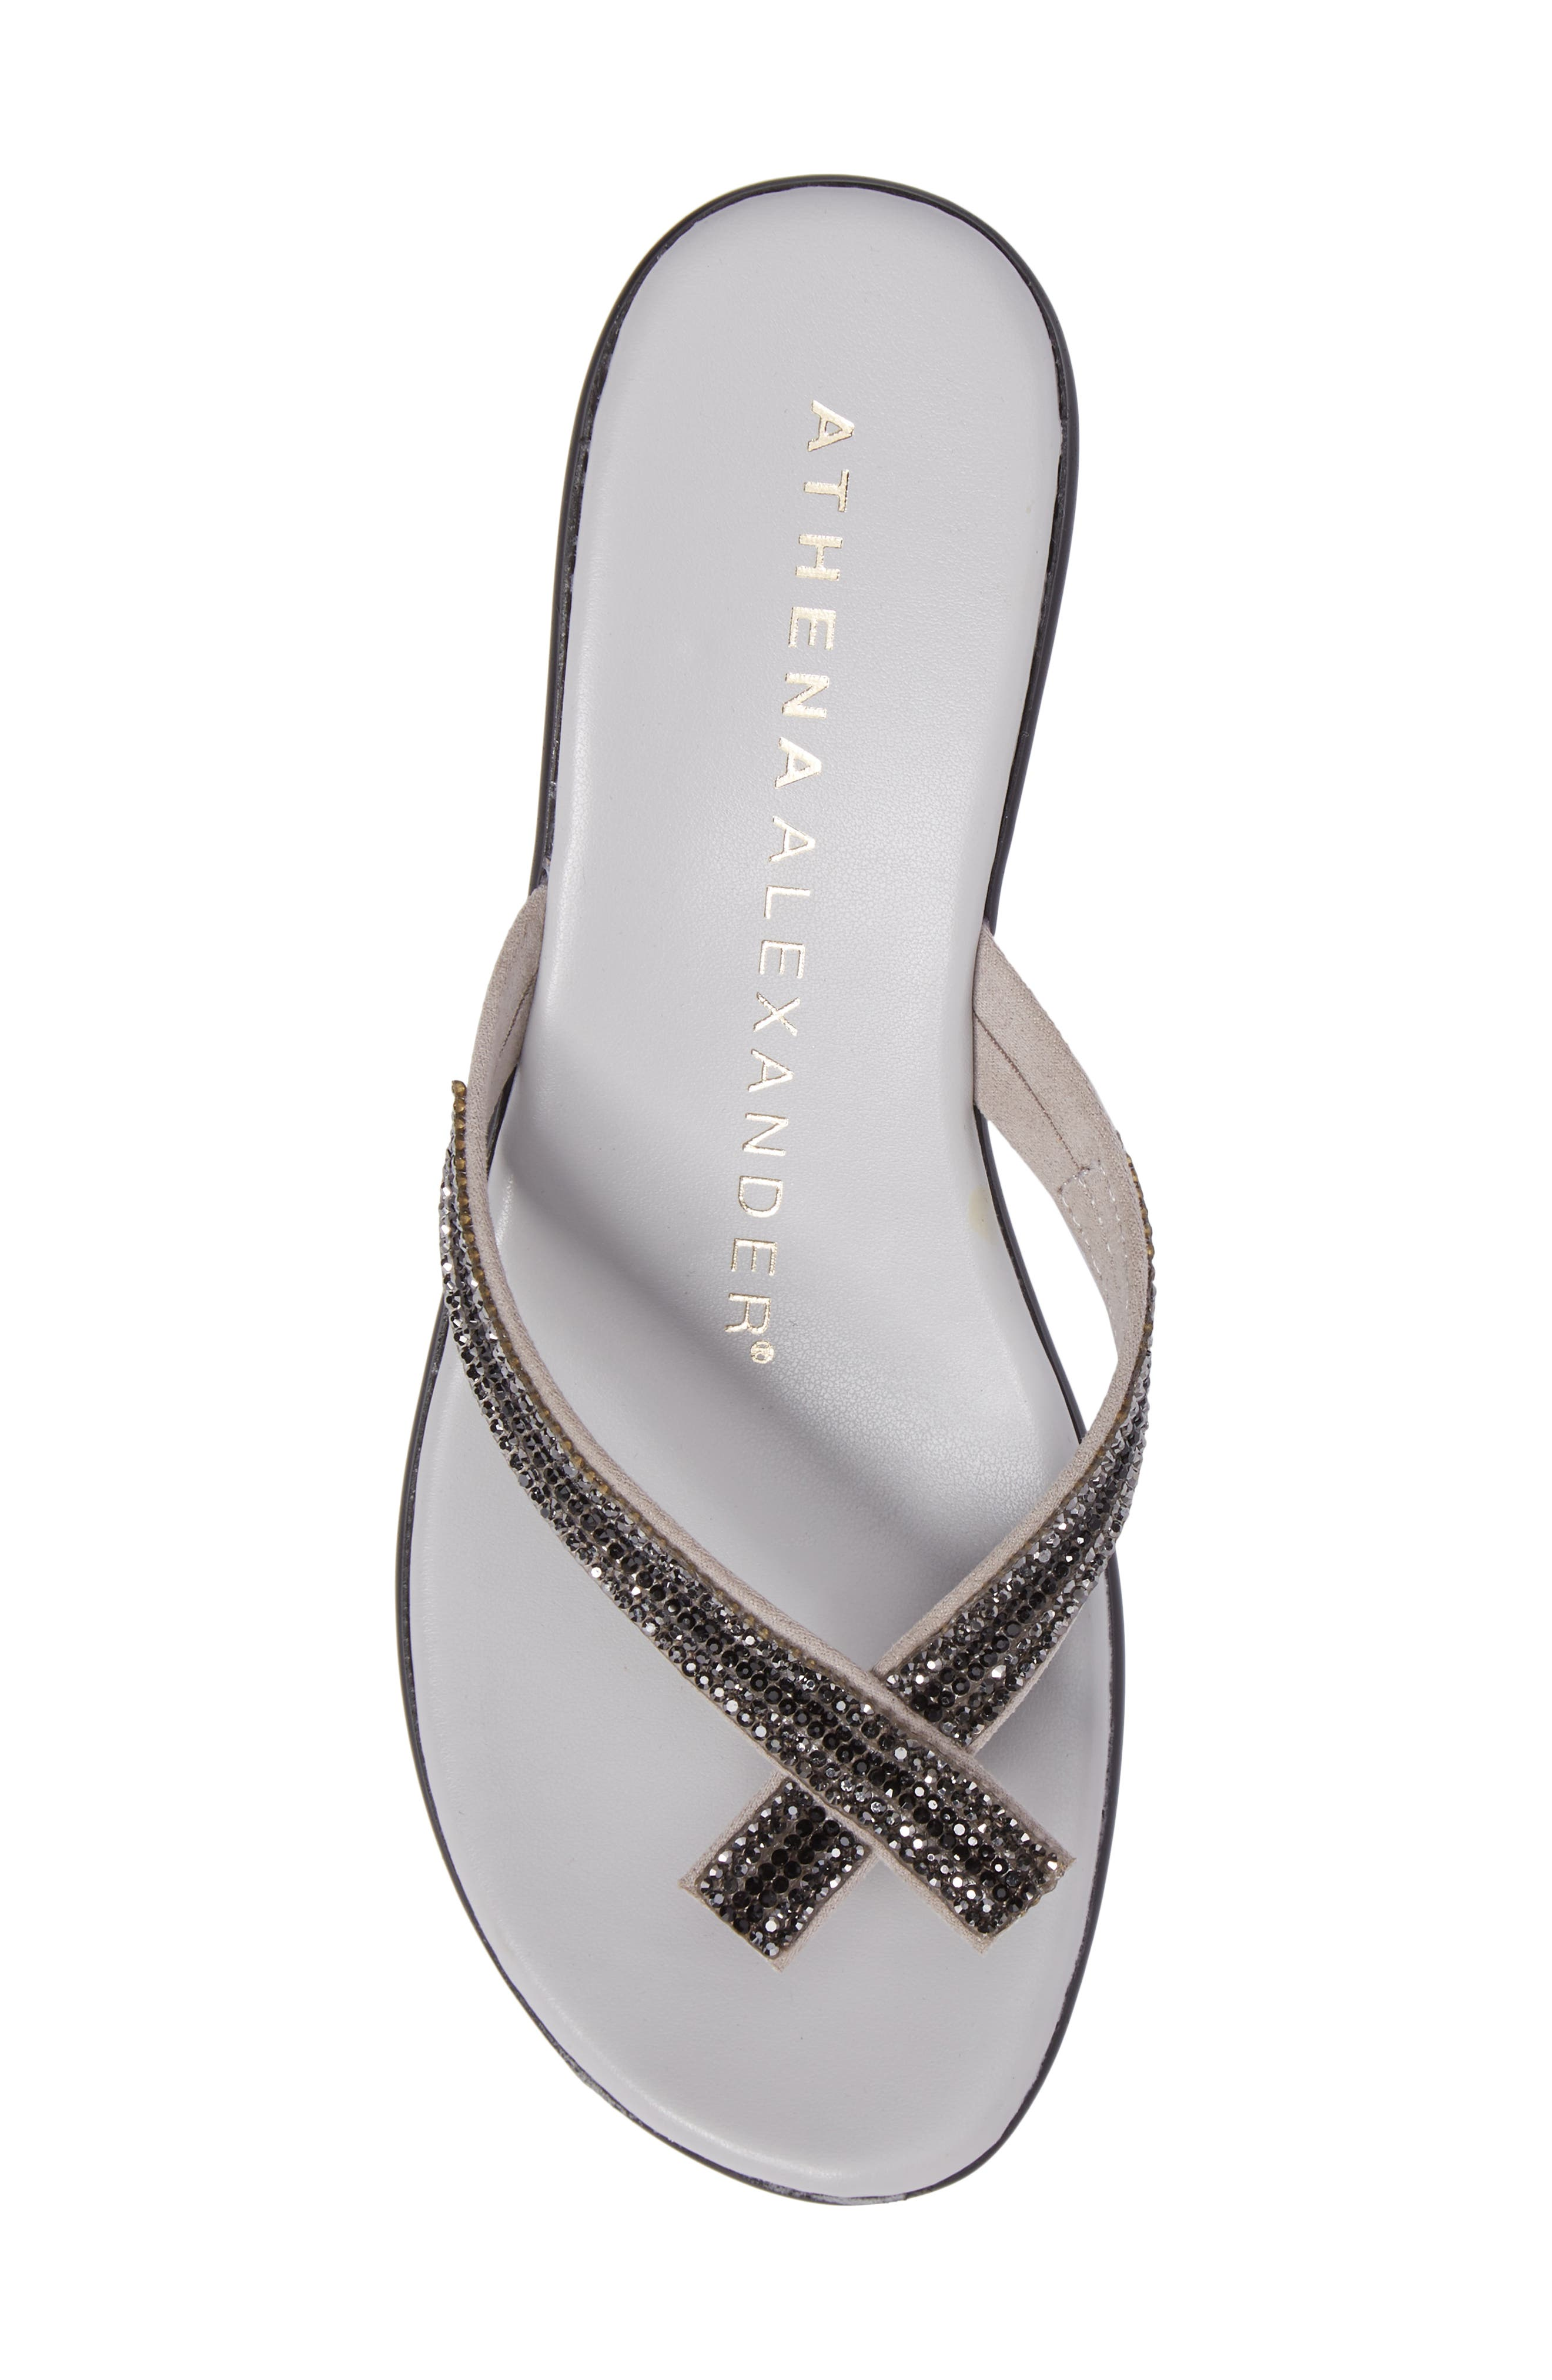 Sienna Wedge Sandal,                             Alternate thumbnail 5, color,                             Grey Synthetic